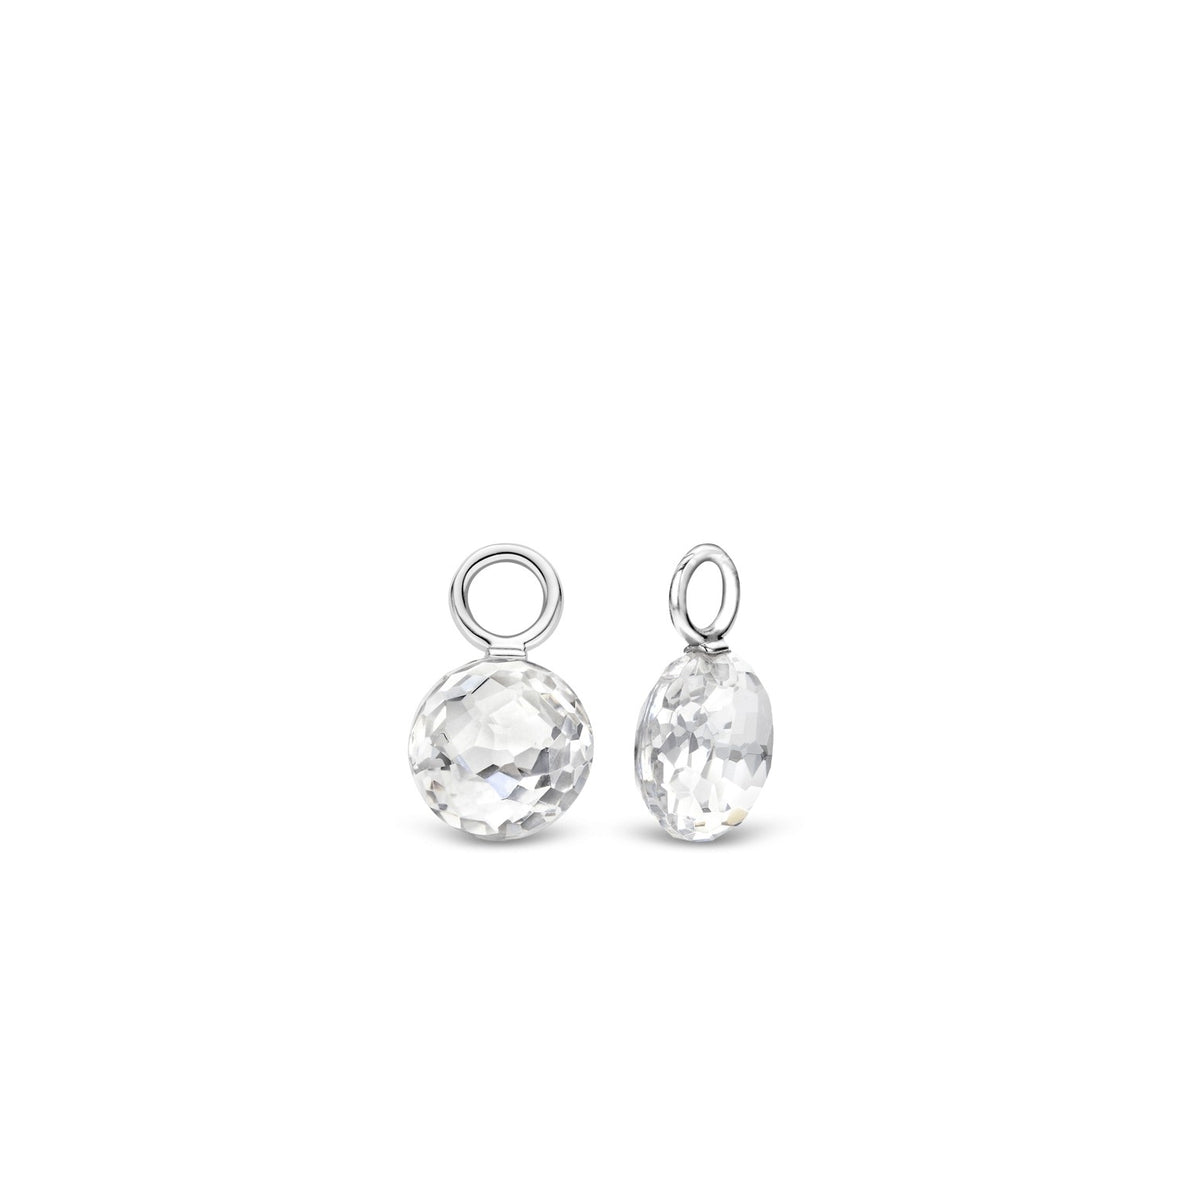 TI SENTO Sterling Silver Ear Charms with Round Clear Faceted Stone